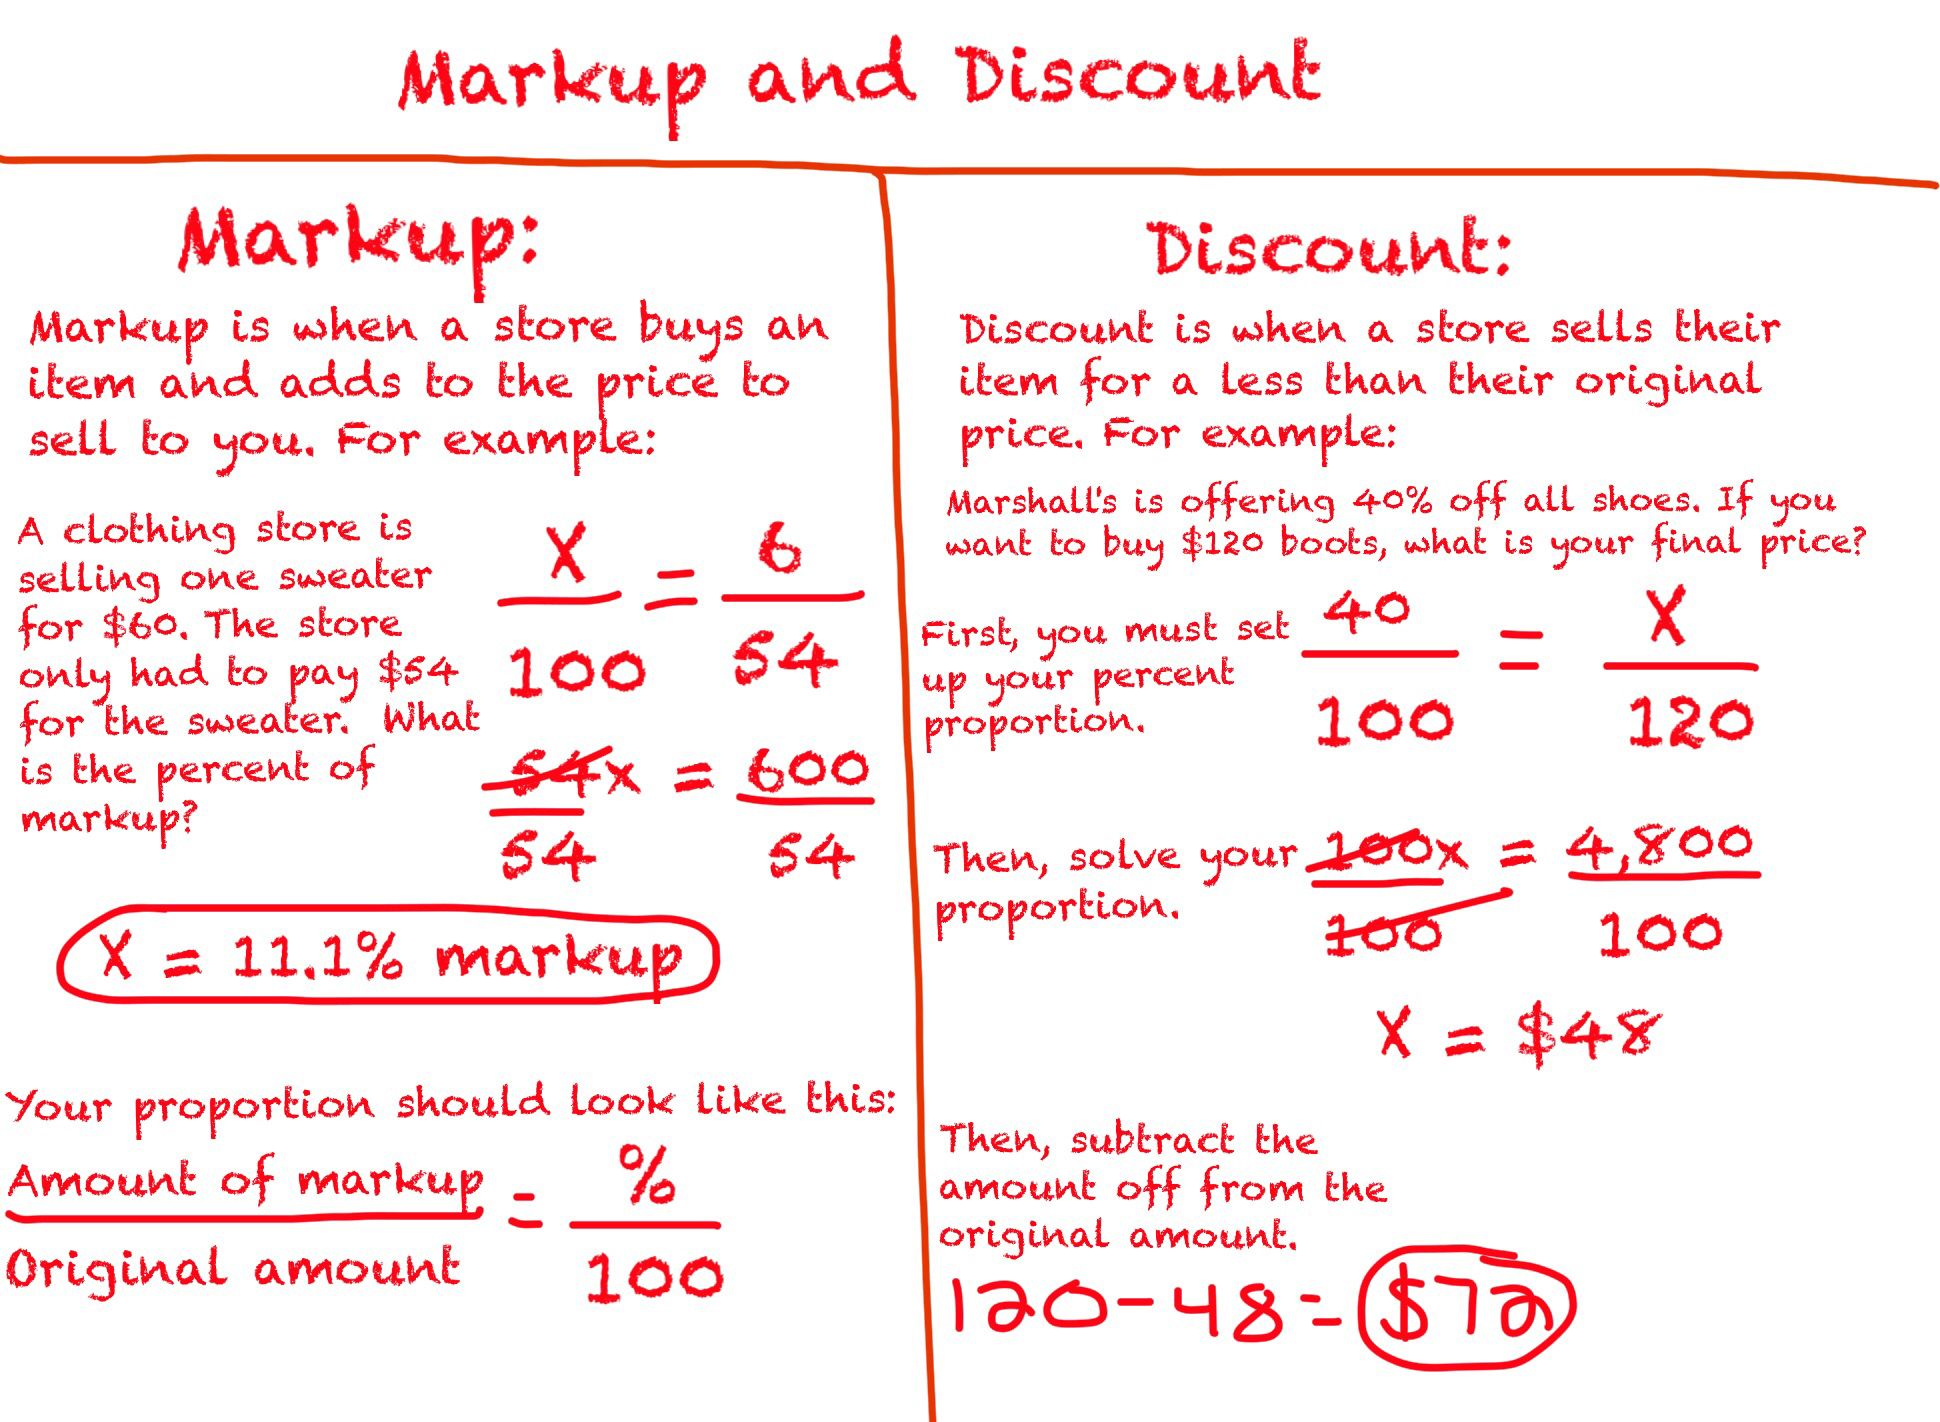 how to get the markup percentage